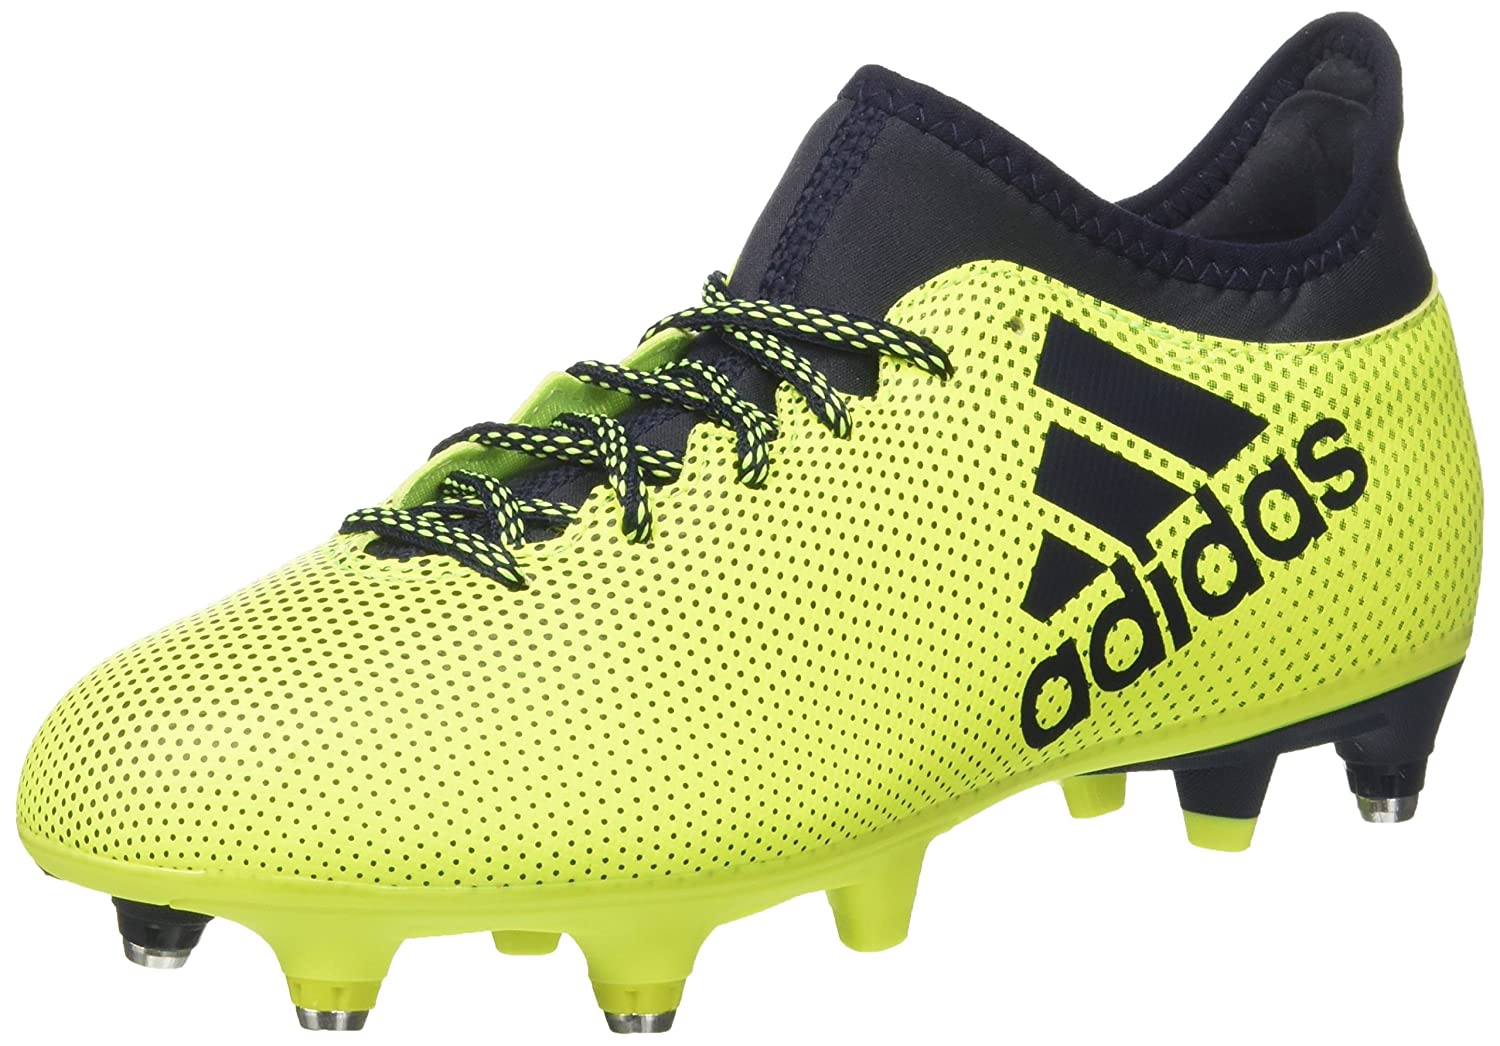 17 X SgChaussures De 3 Homme Adidas Football 0wN8vnm